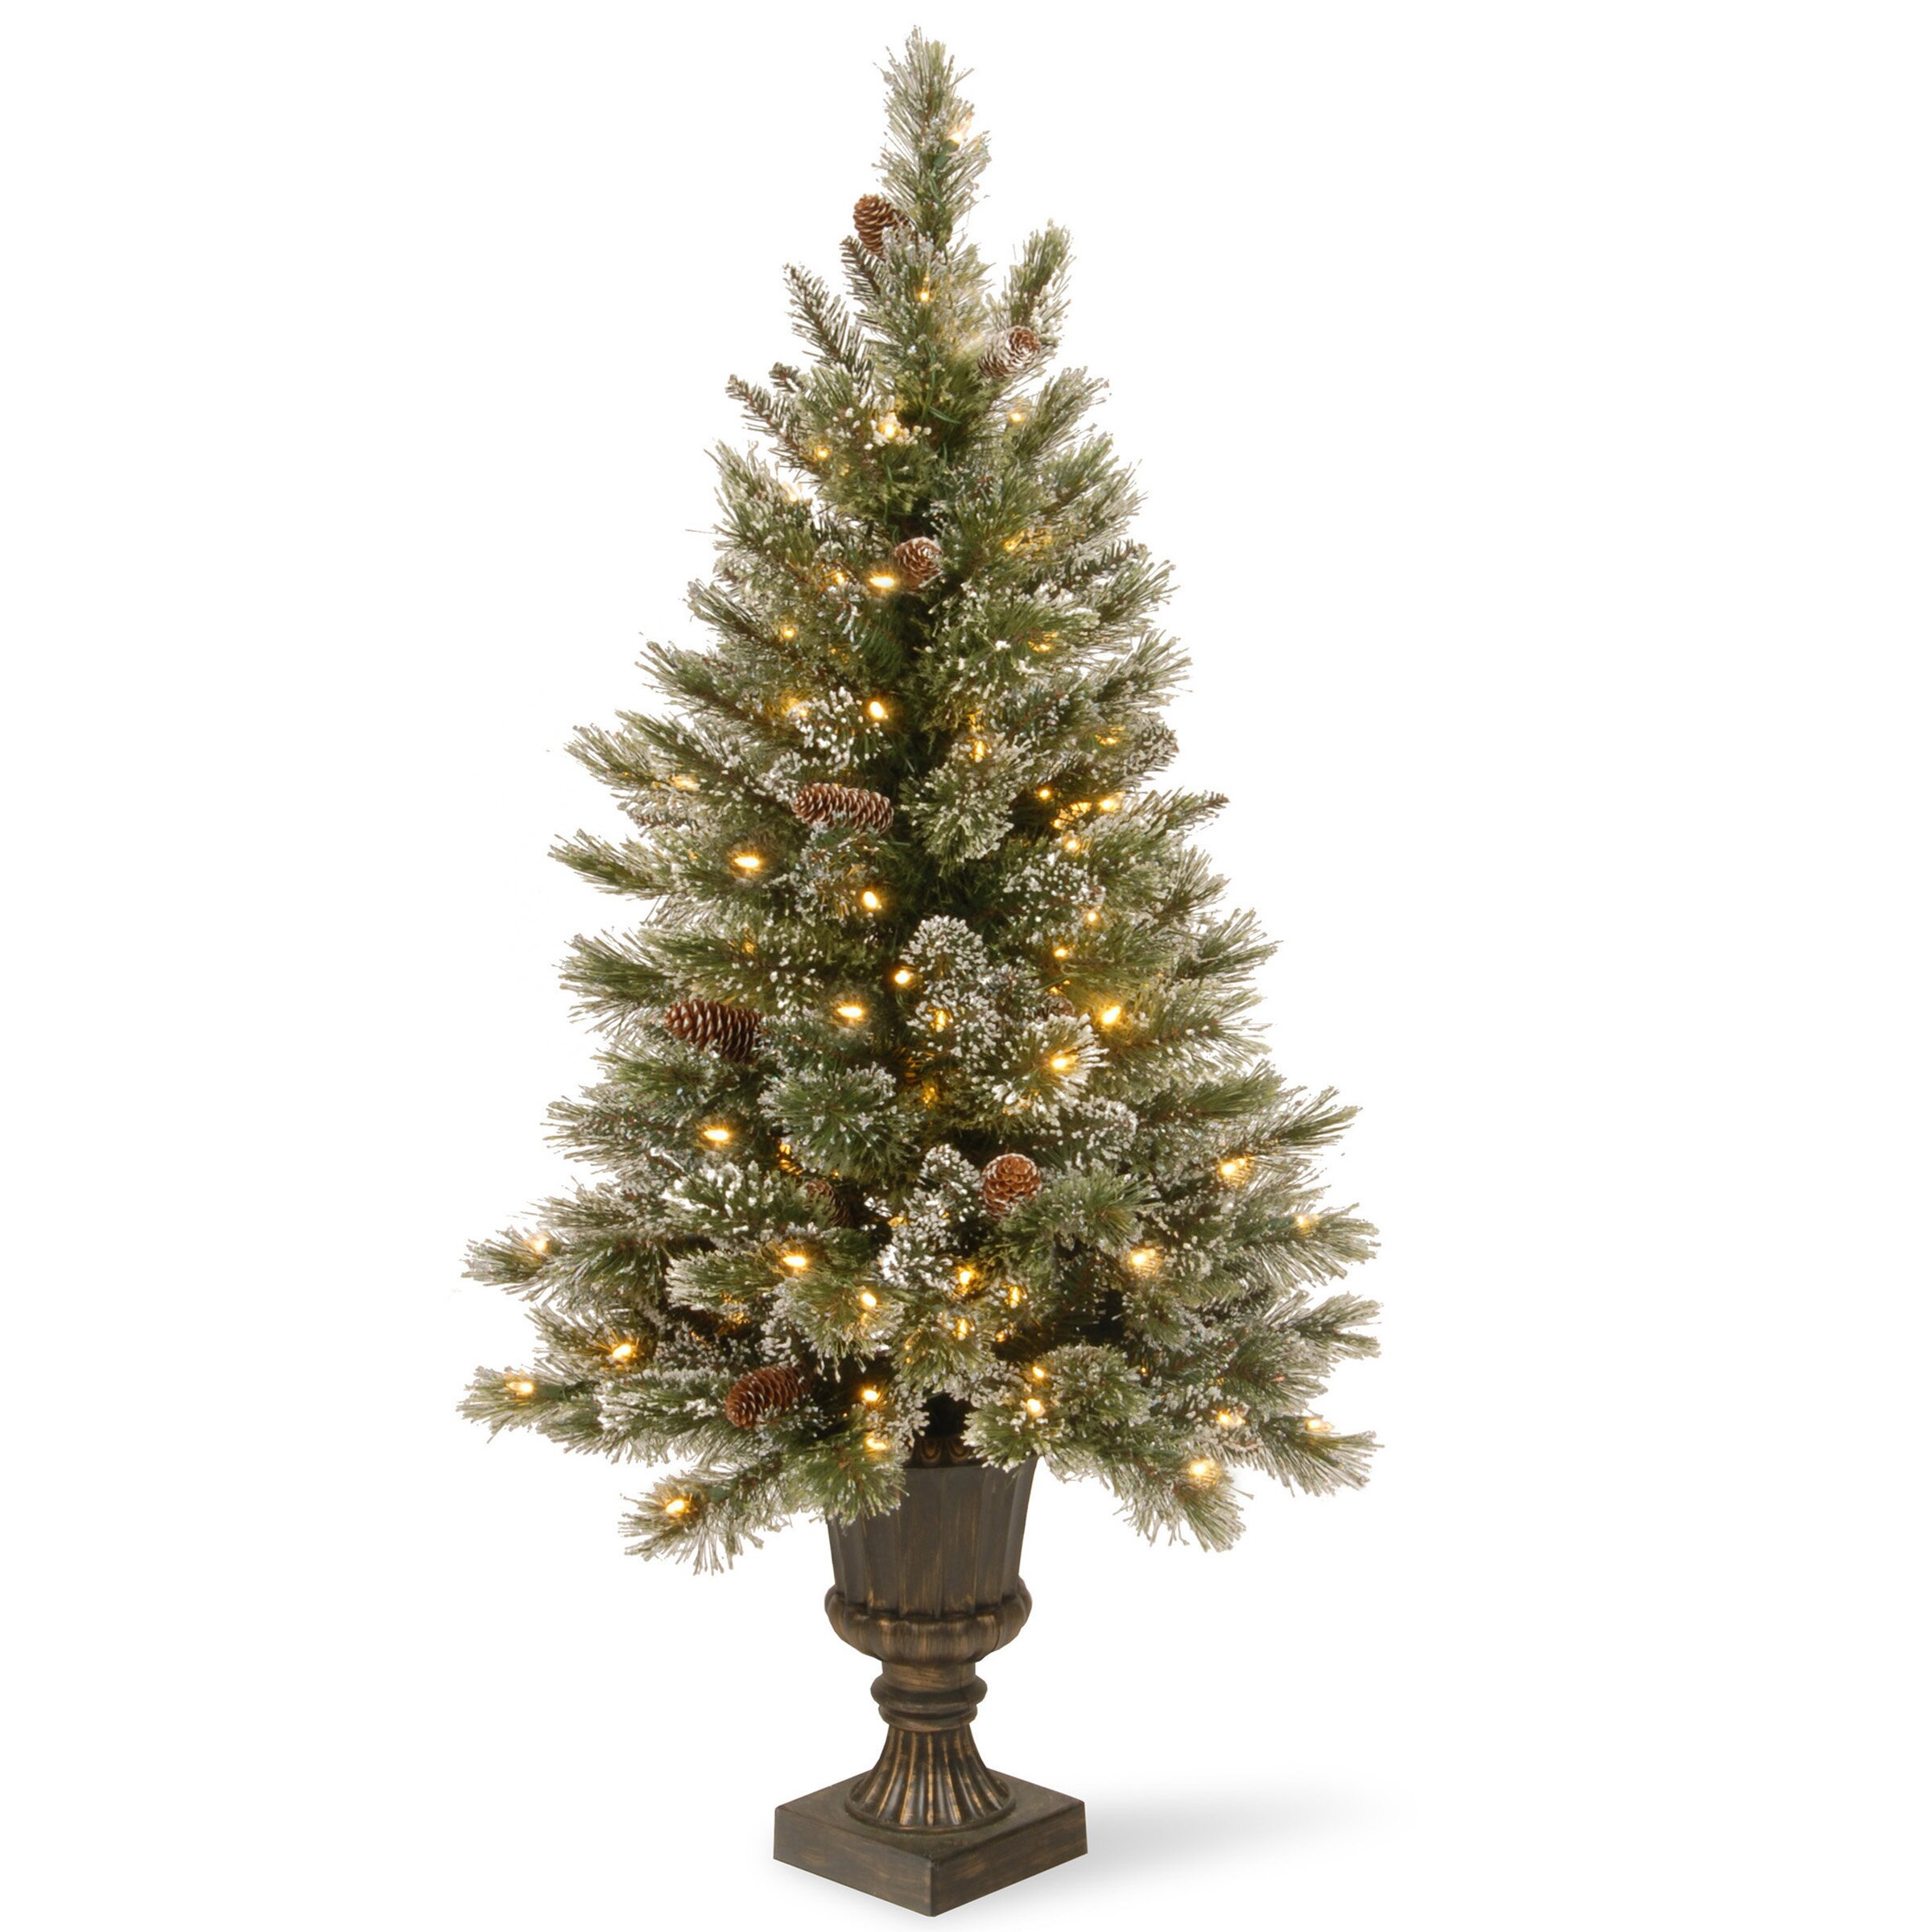 Glittery Bristle Pine 4' Green Artificial Christmas Tree ...